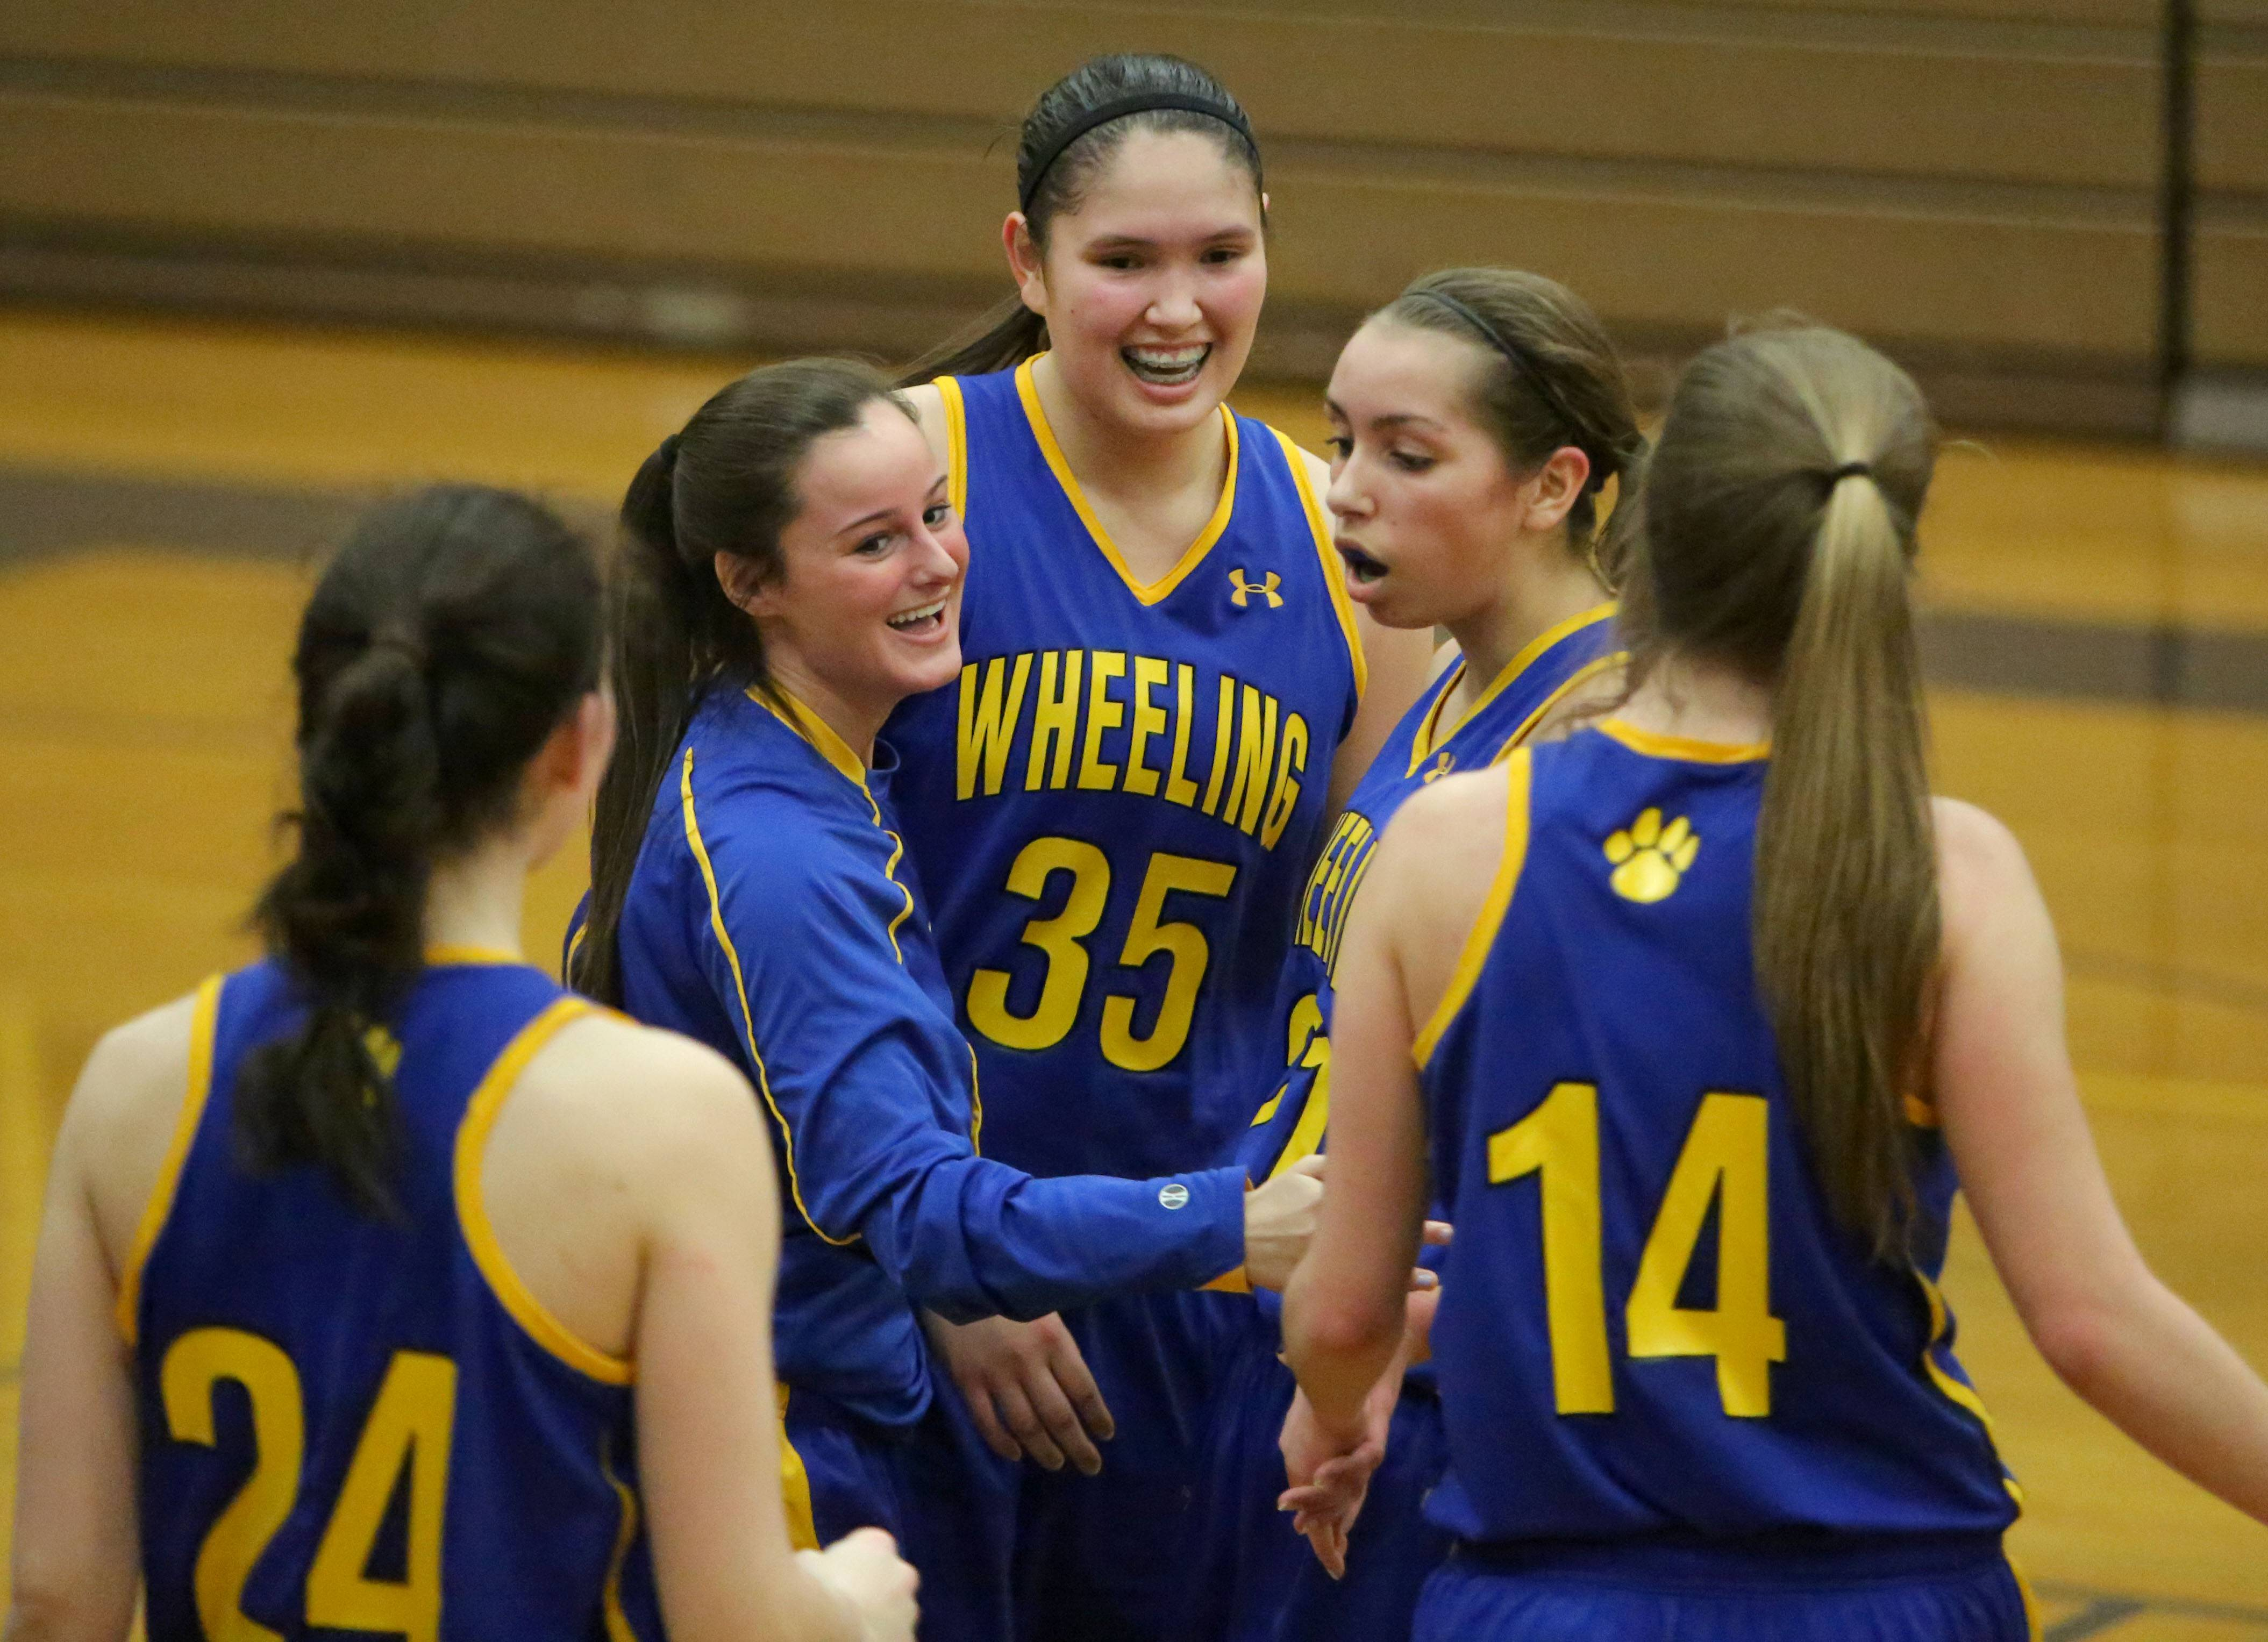 Images: Stevenson vs. Wheeling girls basketball